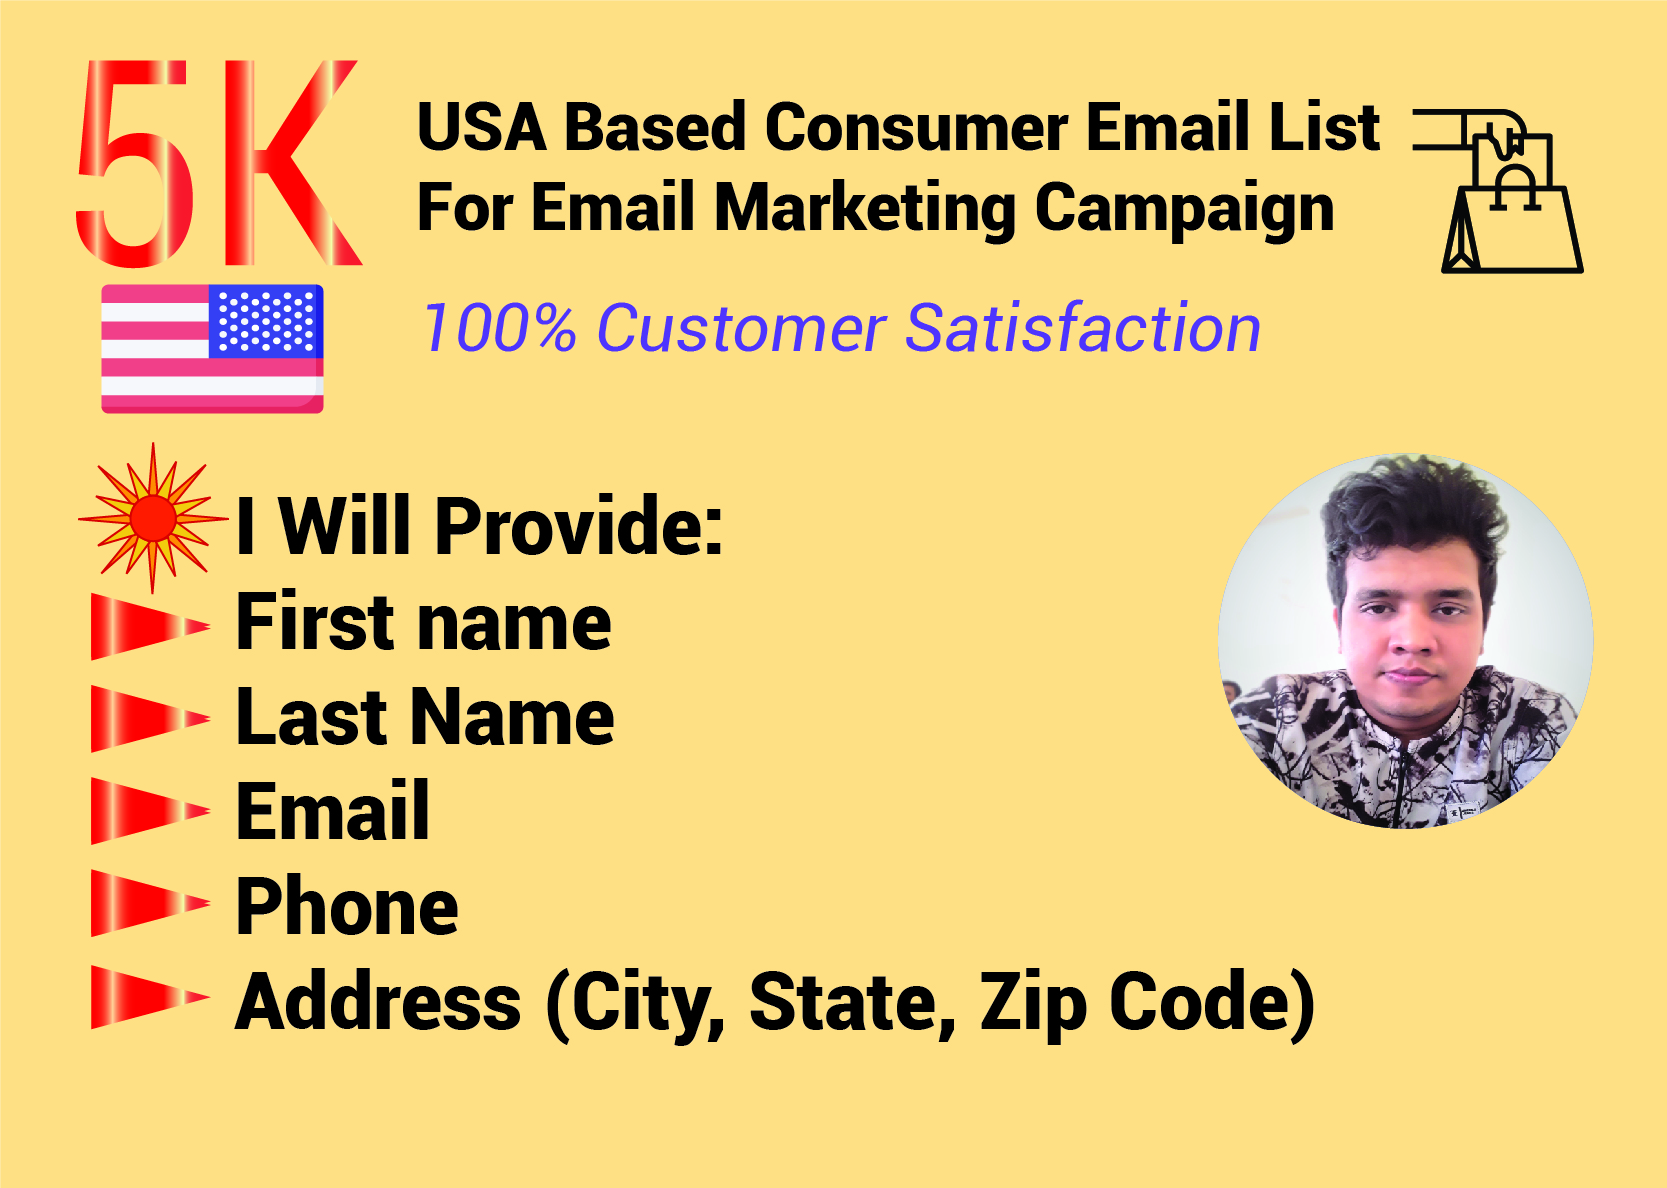 5K USA based consumer email list collection within 24 hours